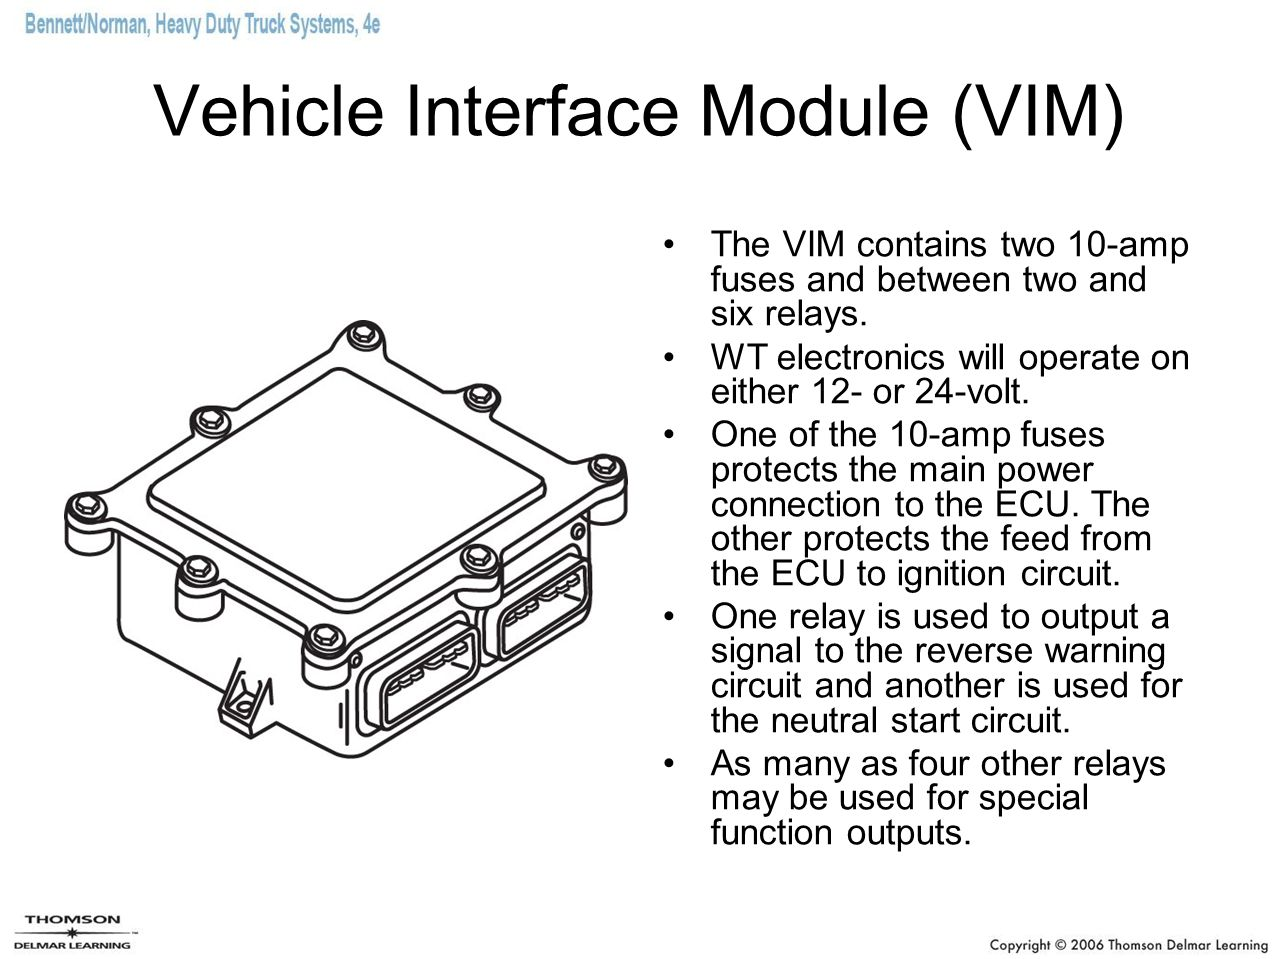 Vehicle+Interface+Module+%28VIM%29 allison electronic transmissions ppt download